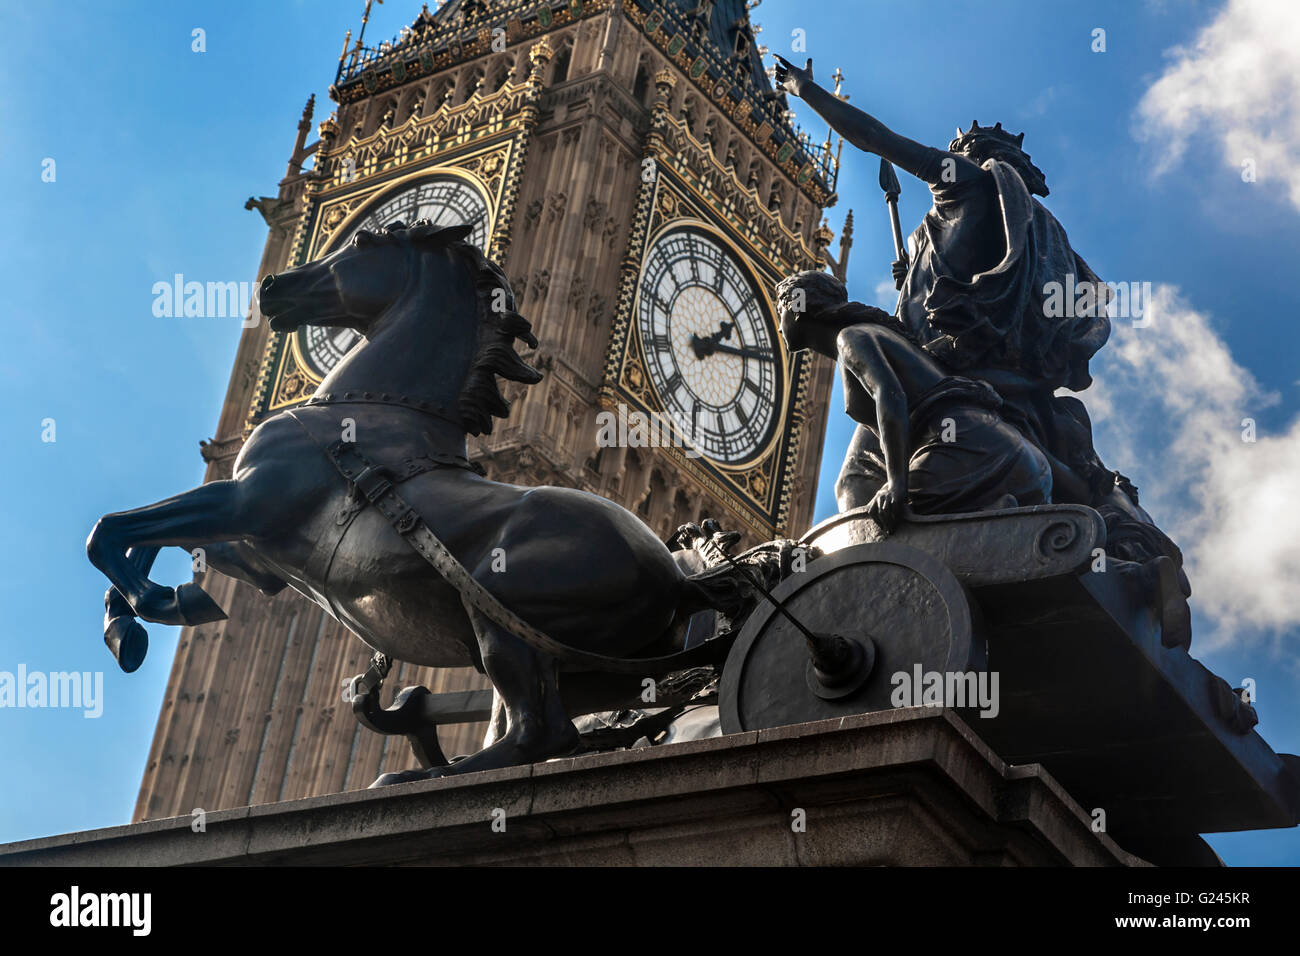 The Boudiccan Rebellion by Thomas Thornycroft and Big Ben (Elizabeth Tower), Westminster, London, England. - Stock Image